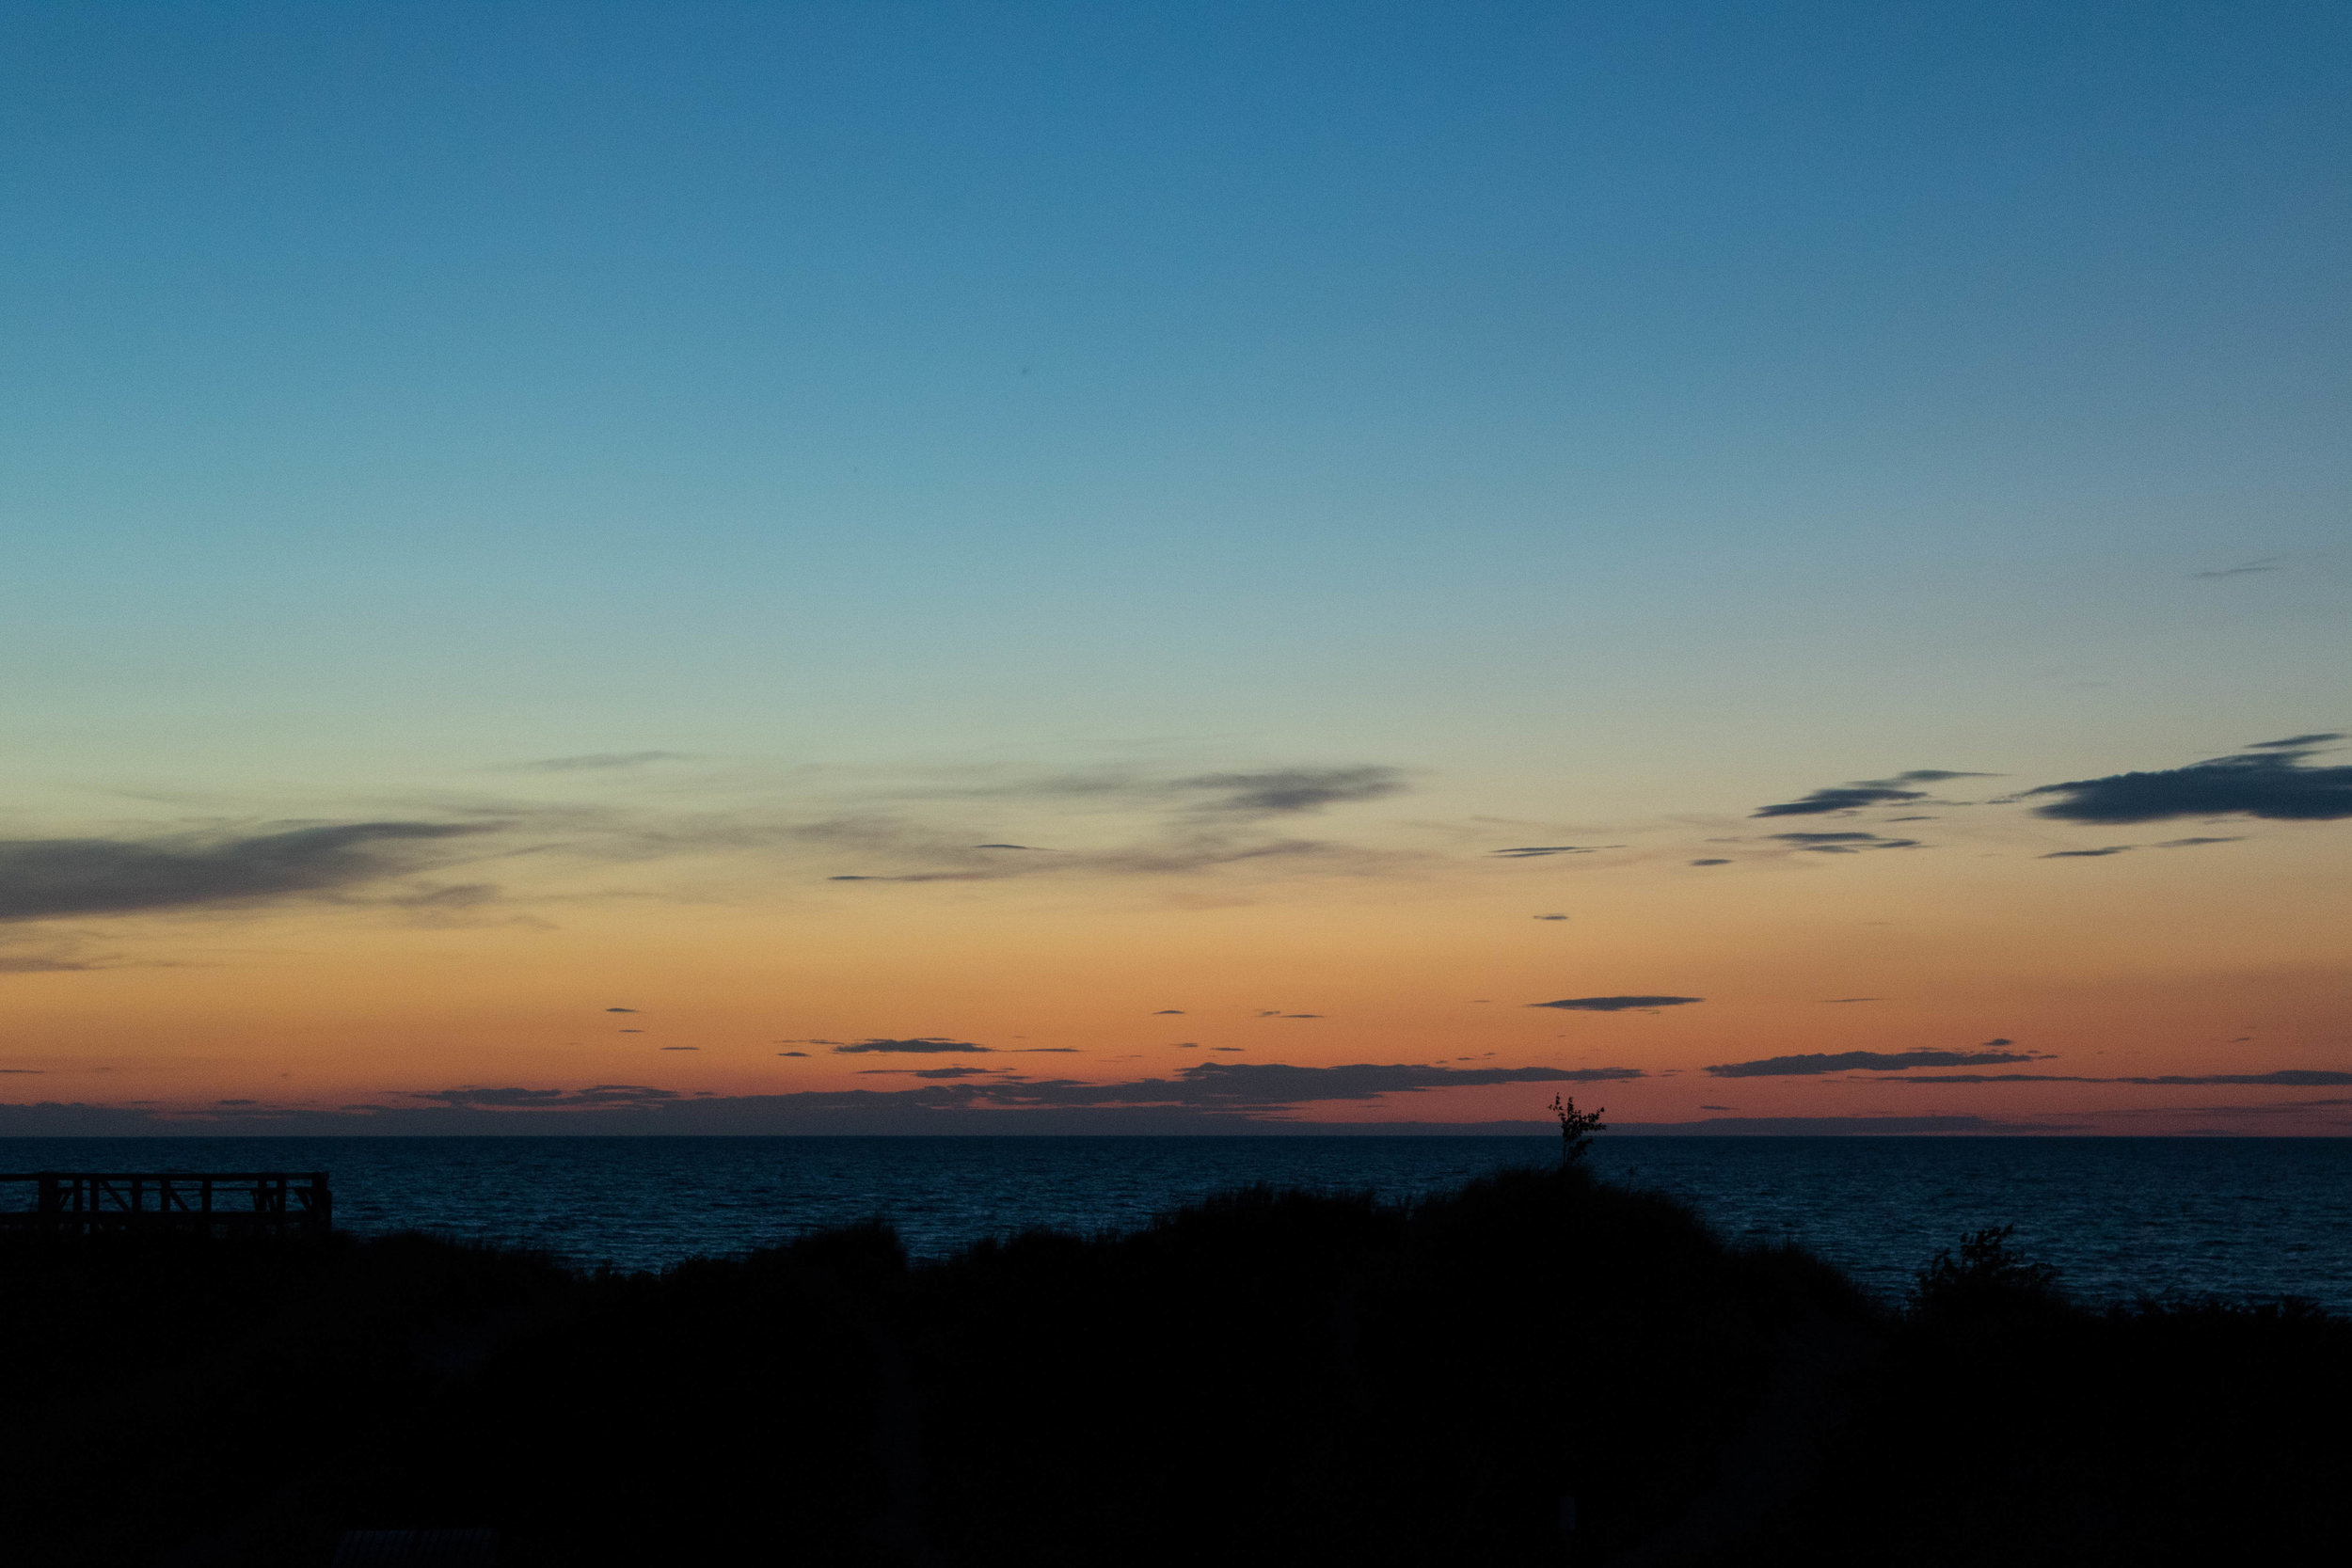 Sunset-Over-Lake-Huron-The-Pinery-Ontario-Canada-Photography